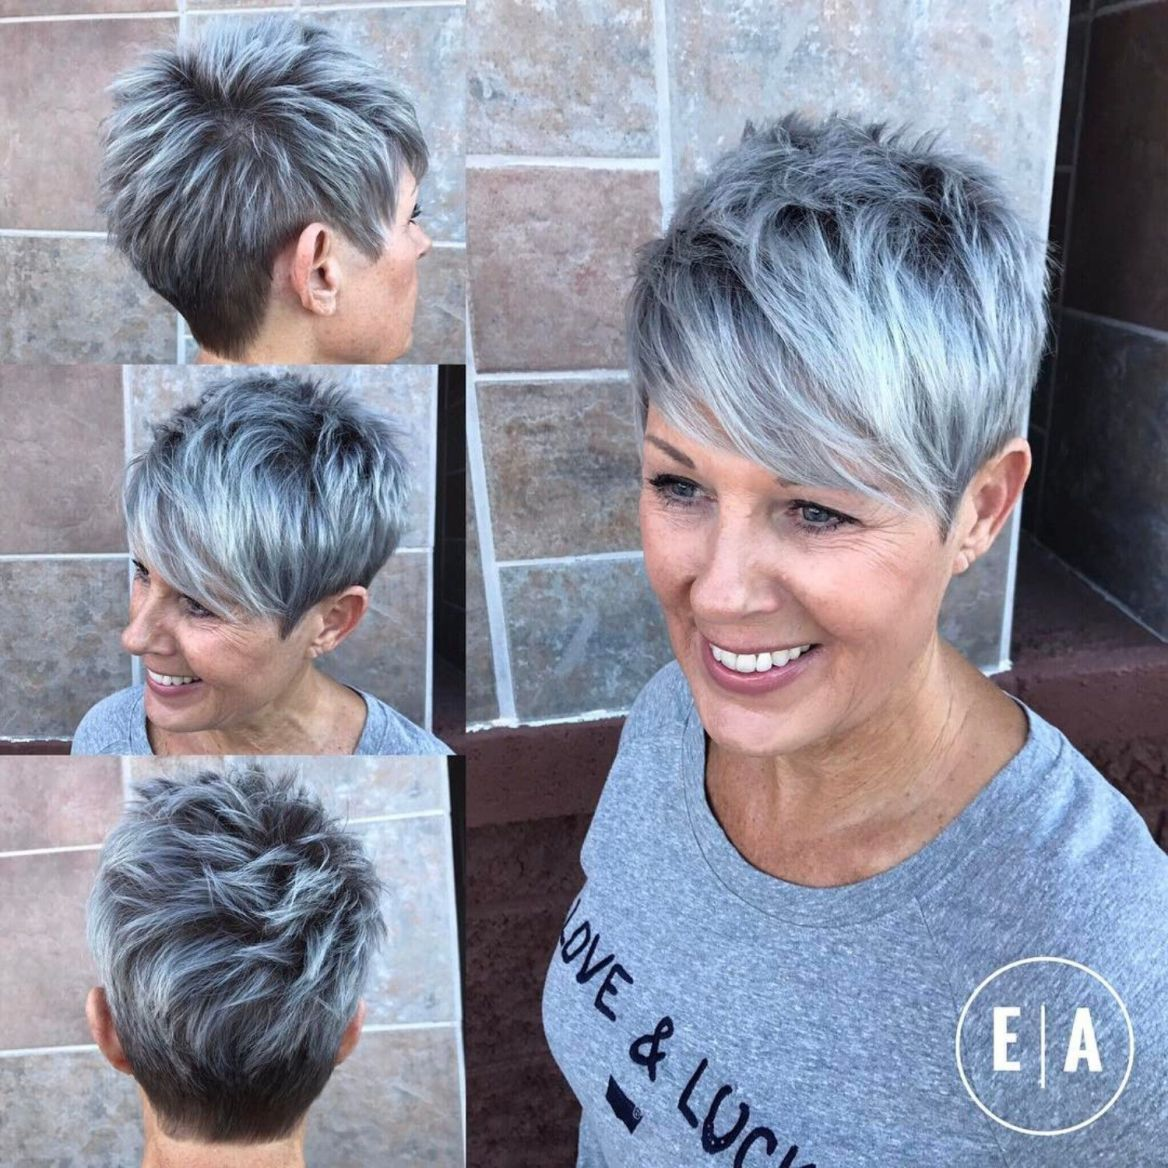 90 Classy And Simple Short Hairstyles For Women Over 50 Kapsels Kapsels Voor Kort Haar Kort Haar Kapsels